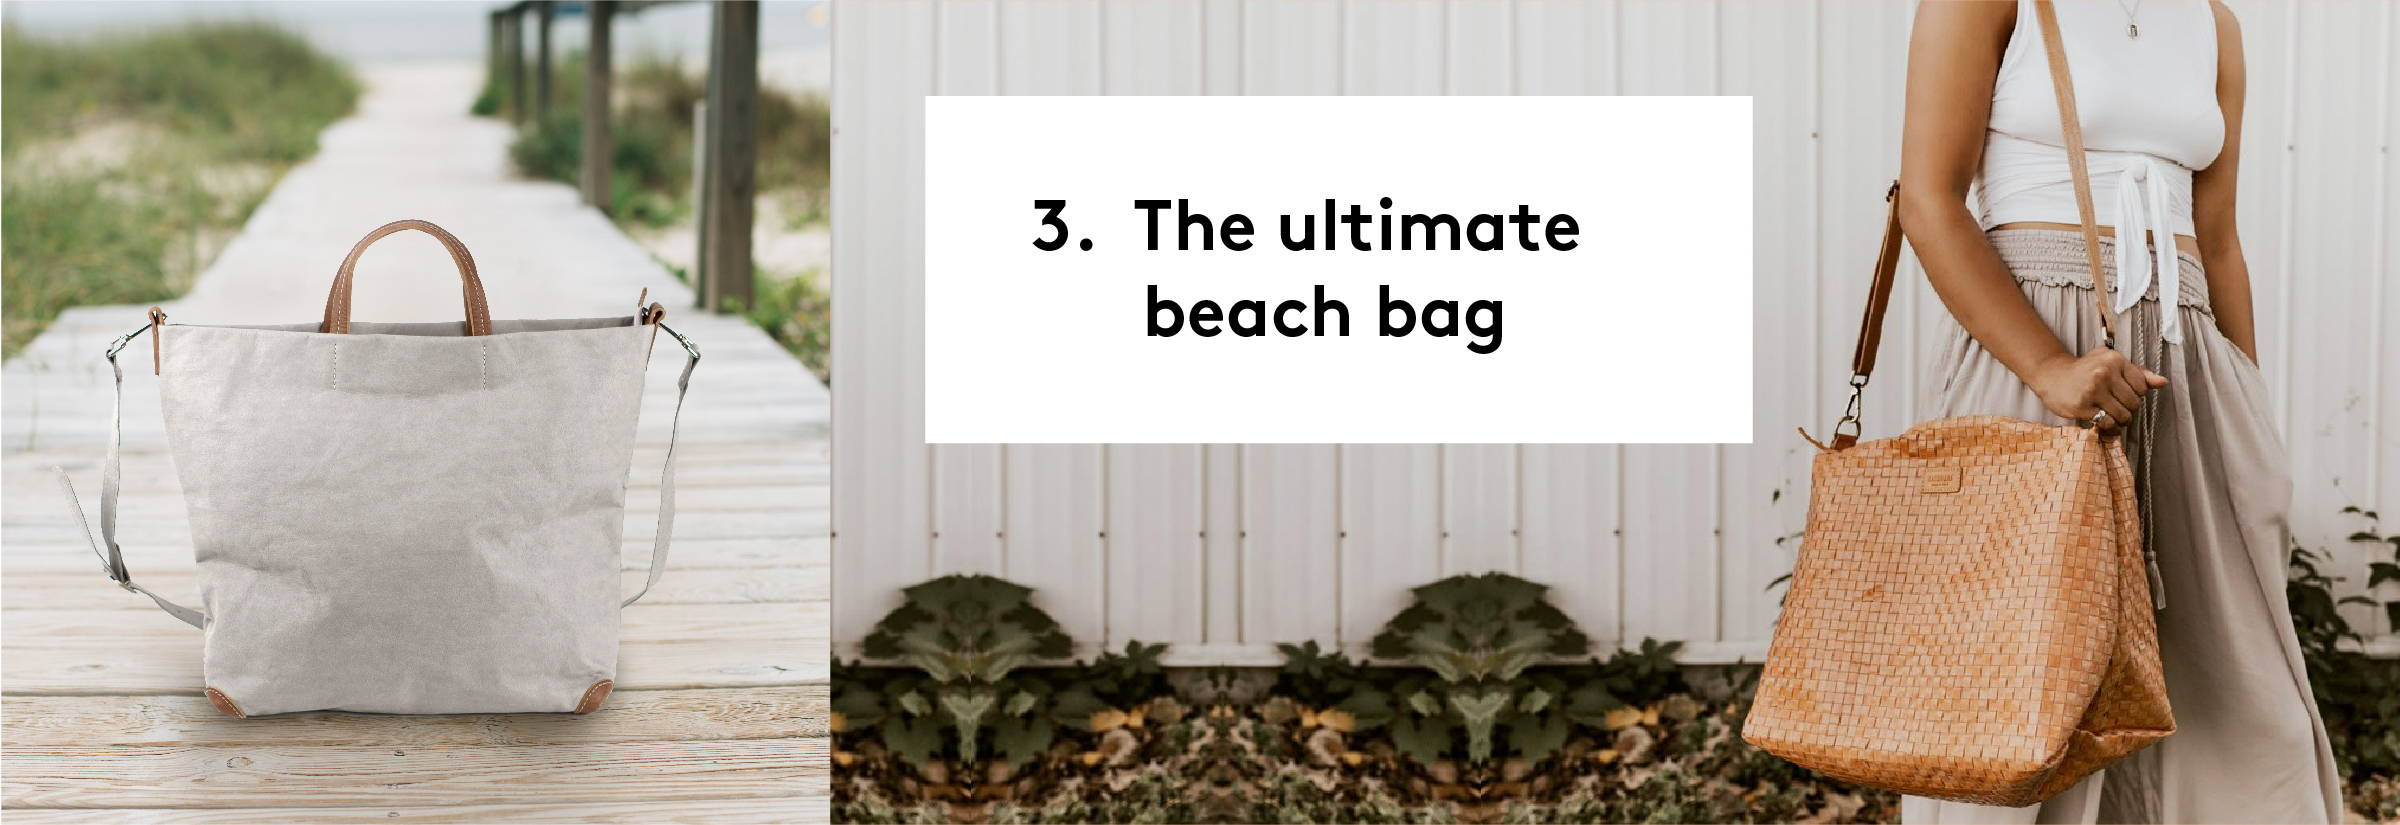 Get the ULTIMATE BEACH BAG from UASHMAMA!